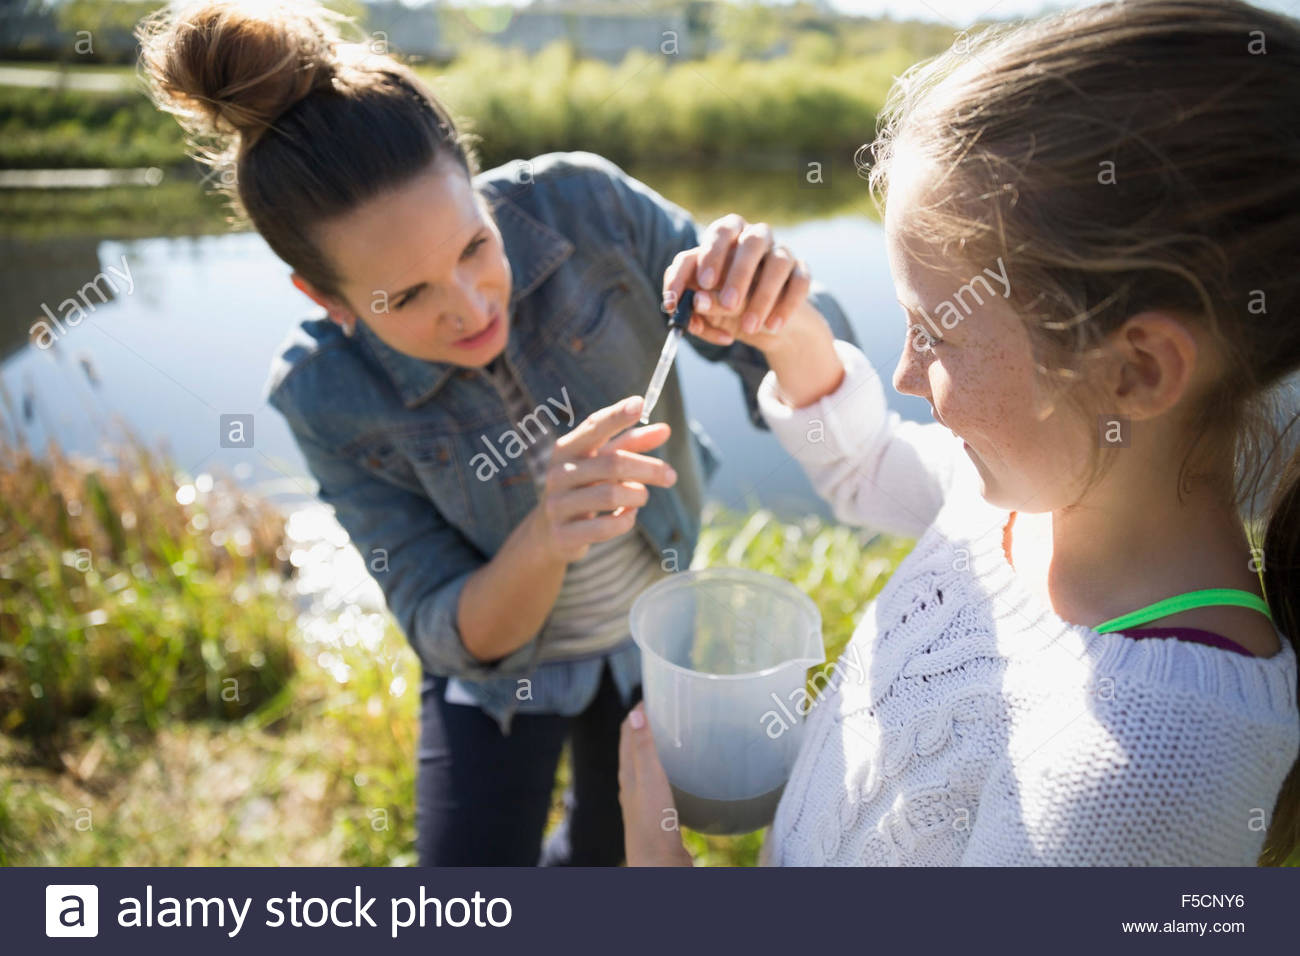 Science teacher and student testing water field trip - Stock Image